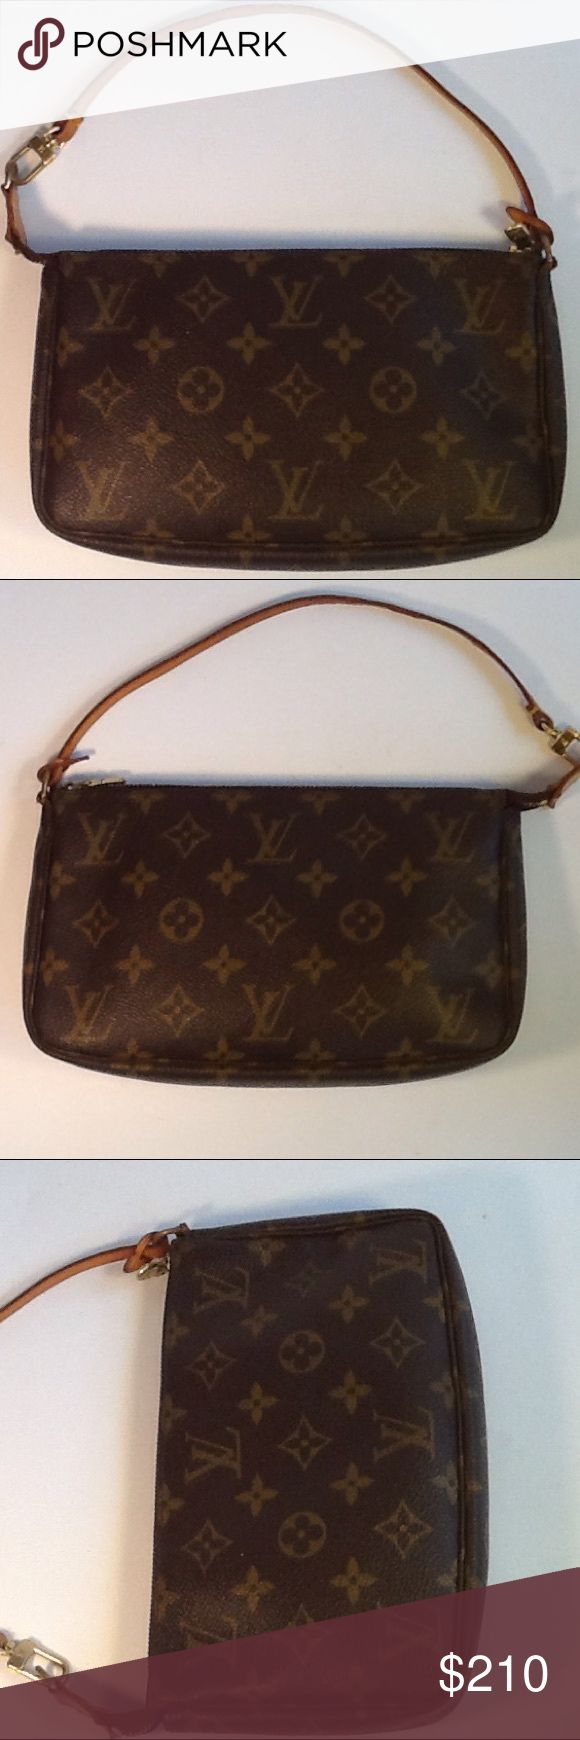 Authentic Louis Vuitton Monogram Pochette Hanbag. The strap showed signs of used. The canvas and inside linen are good. The bag was made in France with a date code VI 0090. Louis Vuitton Bags Clutches & Wristlets